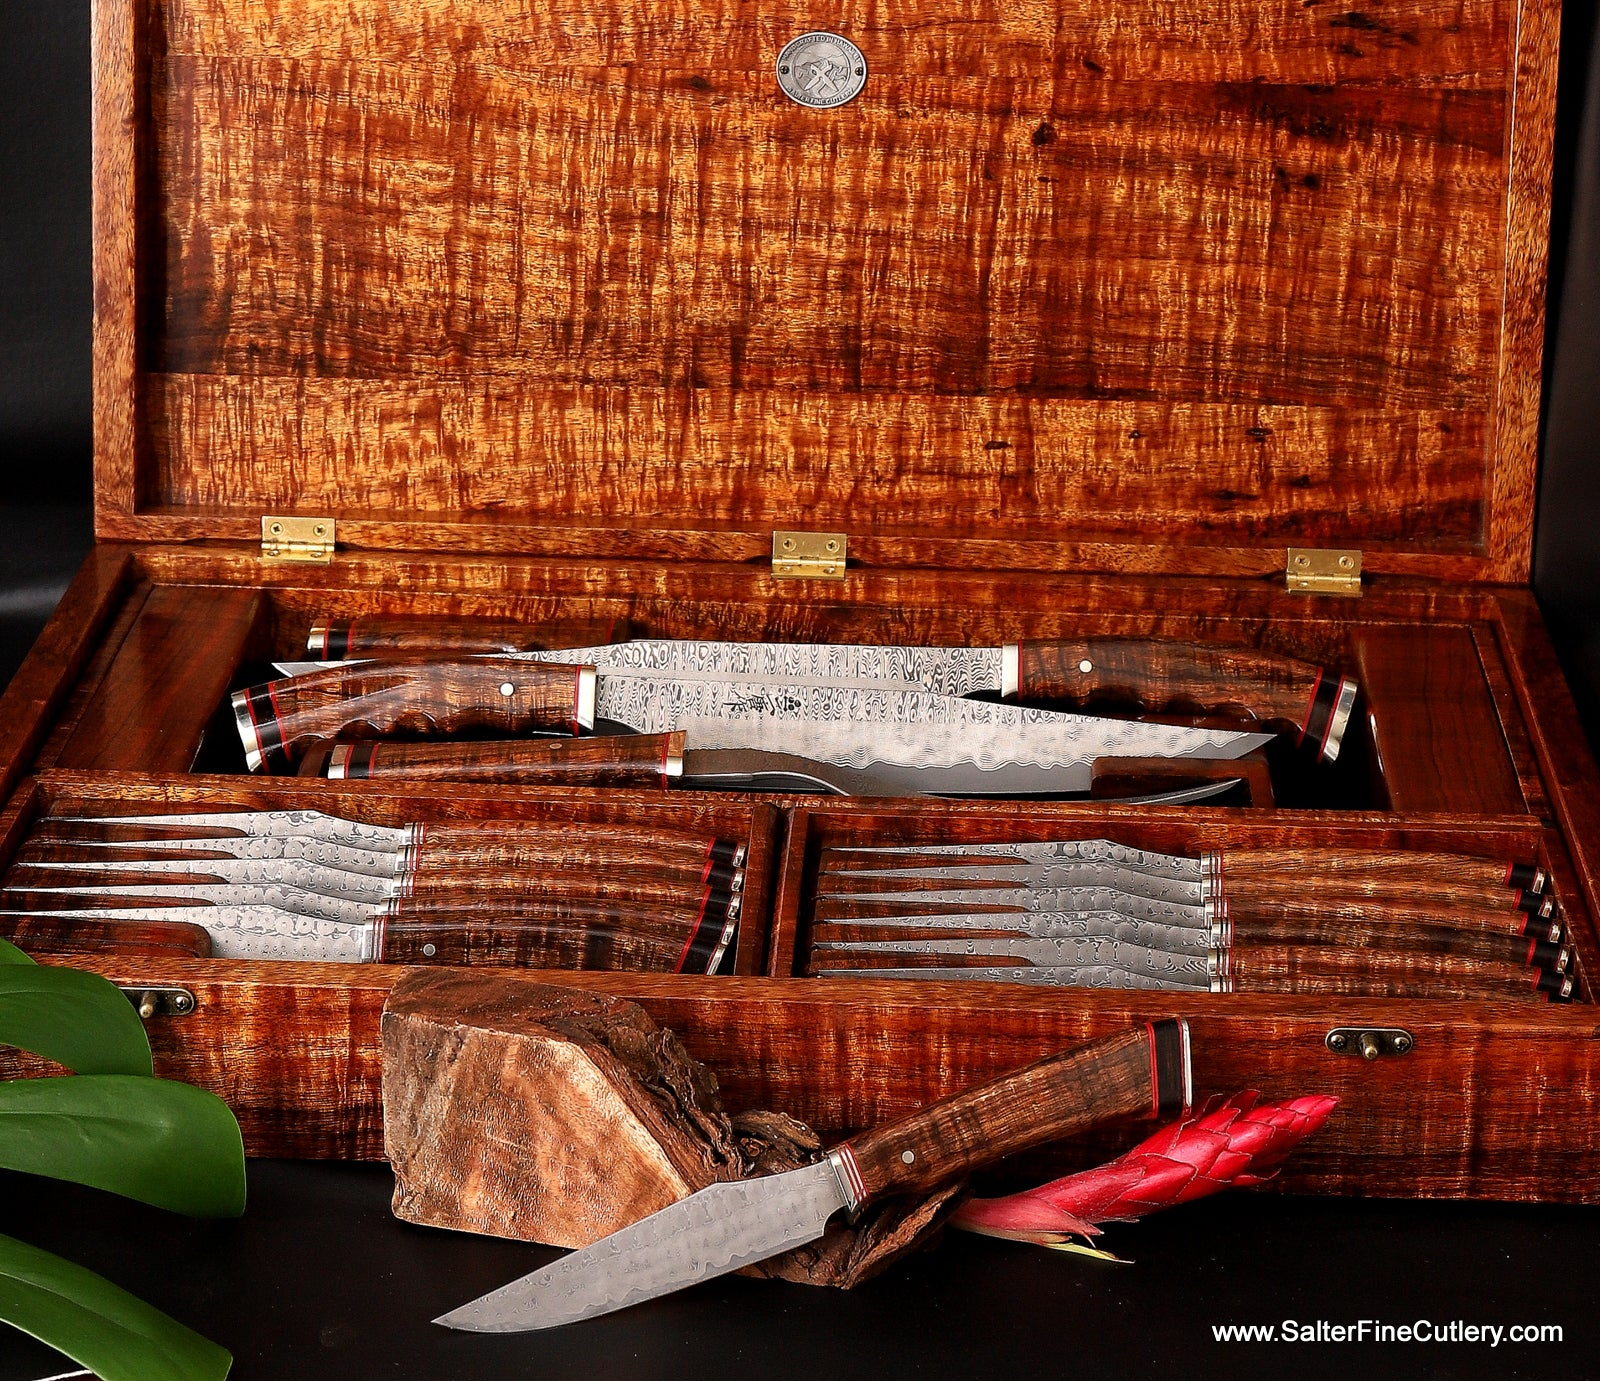 Artisan design steak knife set for luxury outdoor living by Salter Fine Cutlery of Hawaii